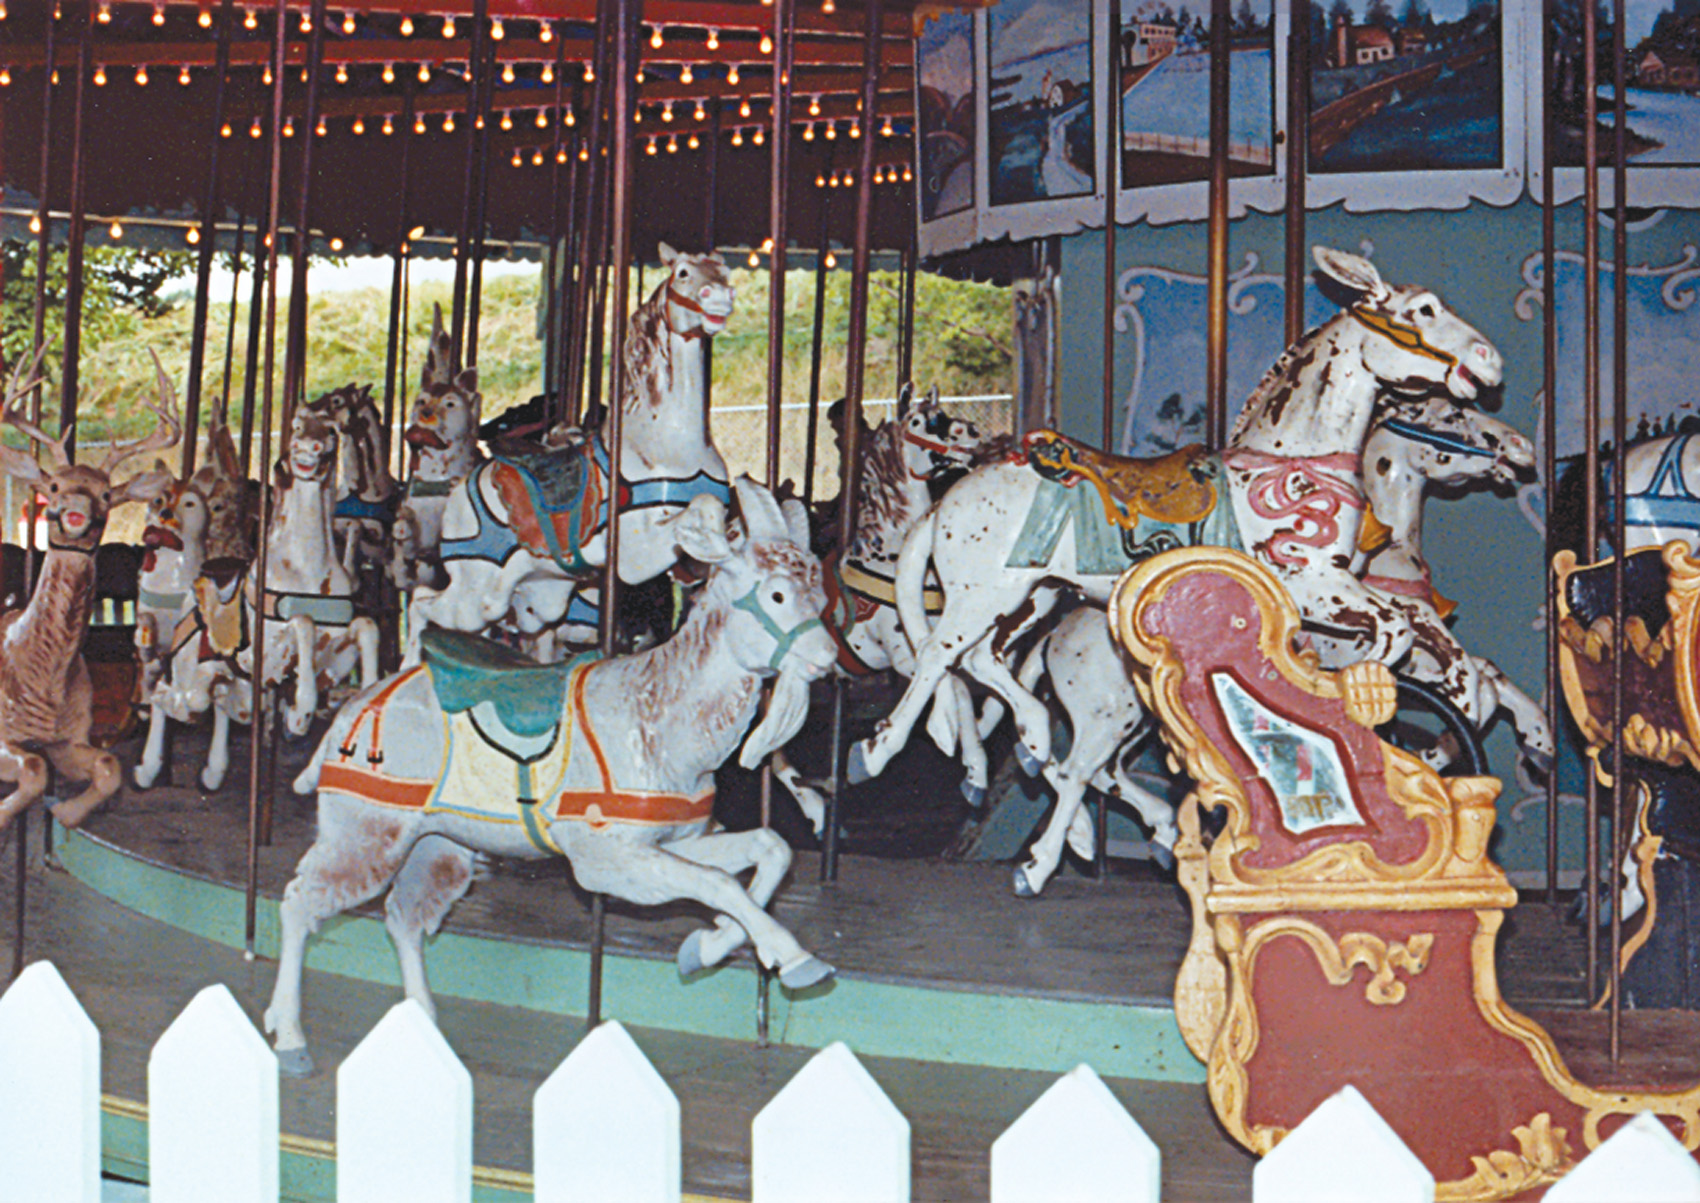 Beech-Bend-park-Dentzel-menagerie-carousel-Farnsworth-photo